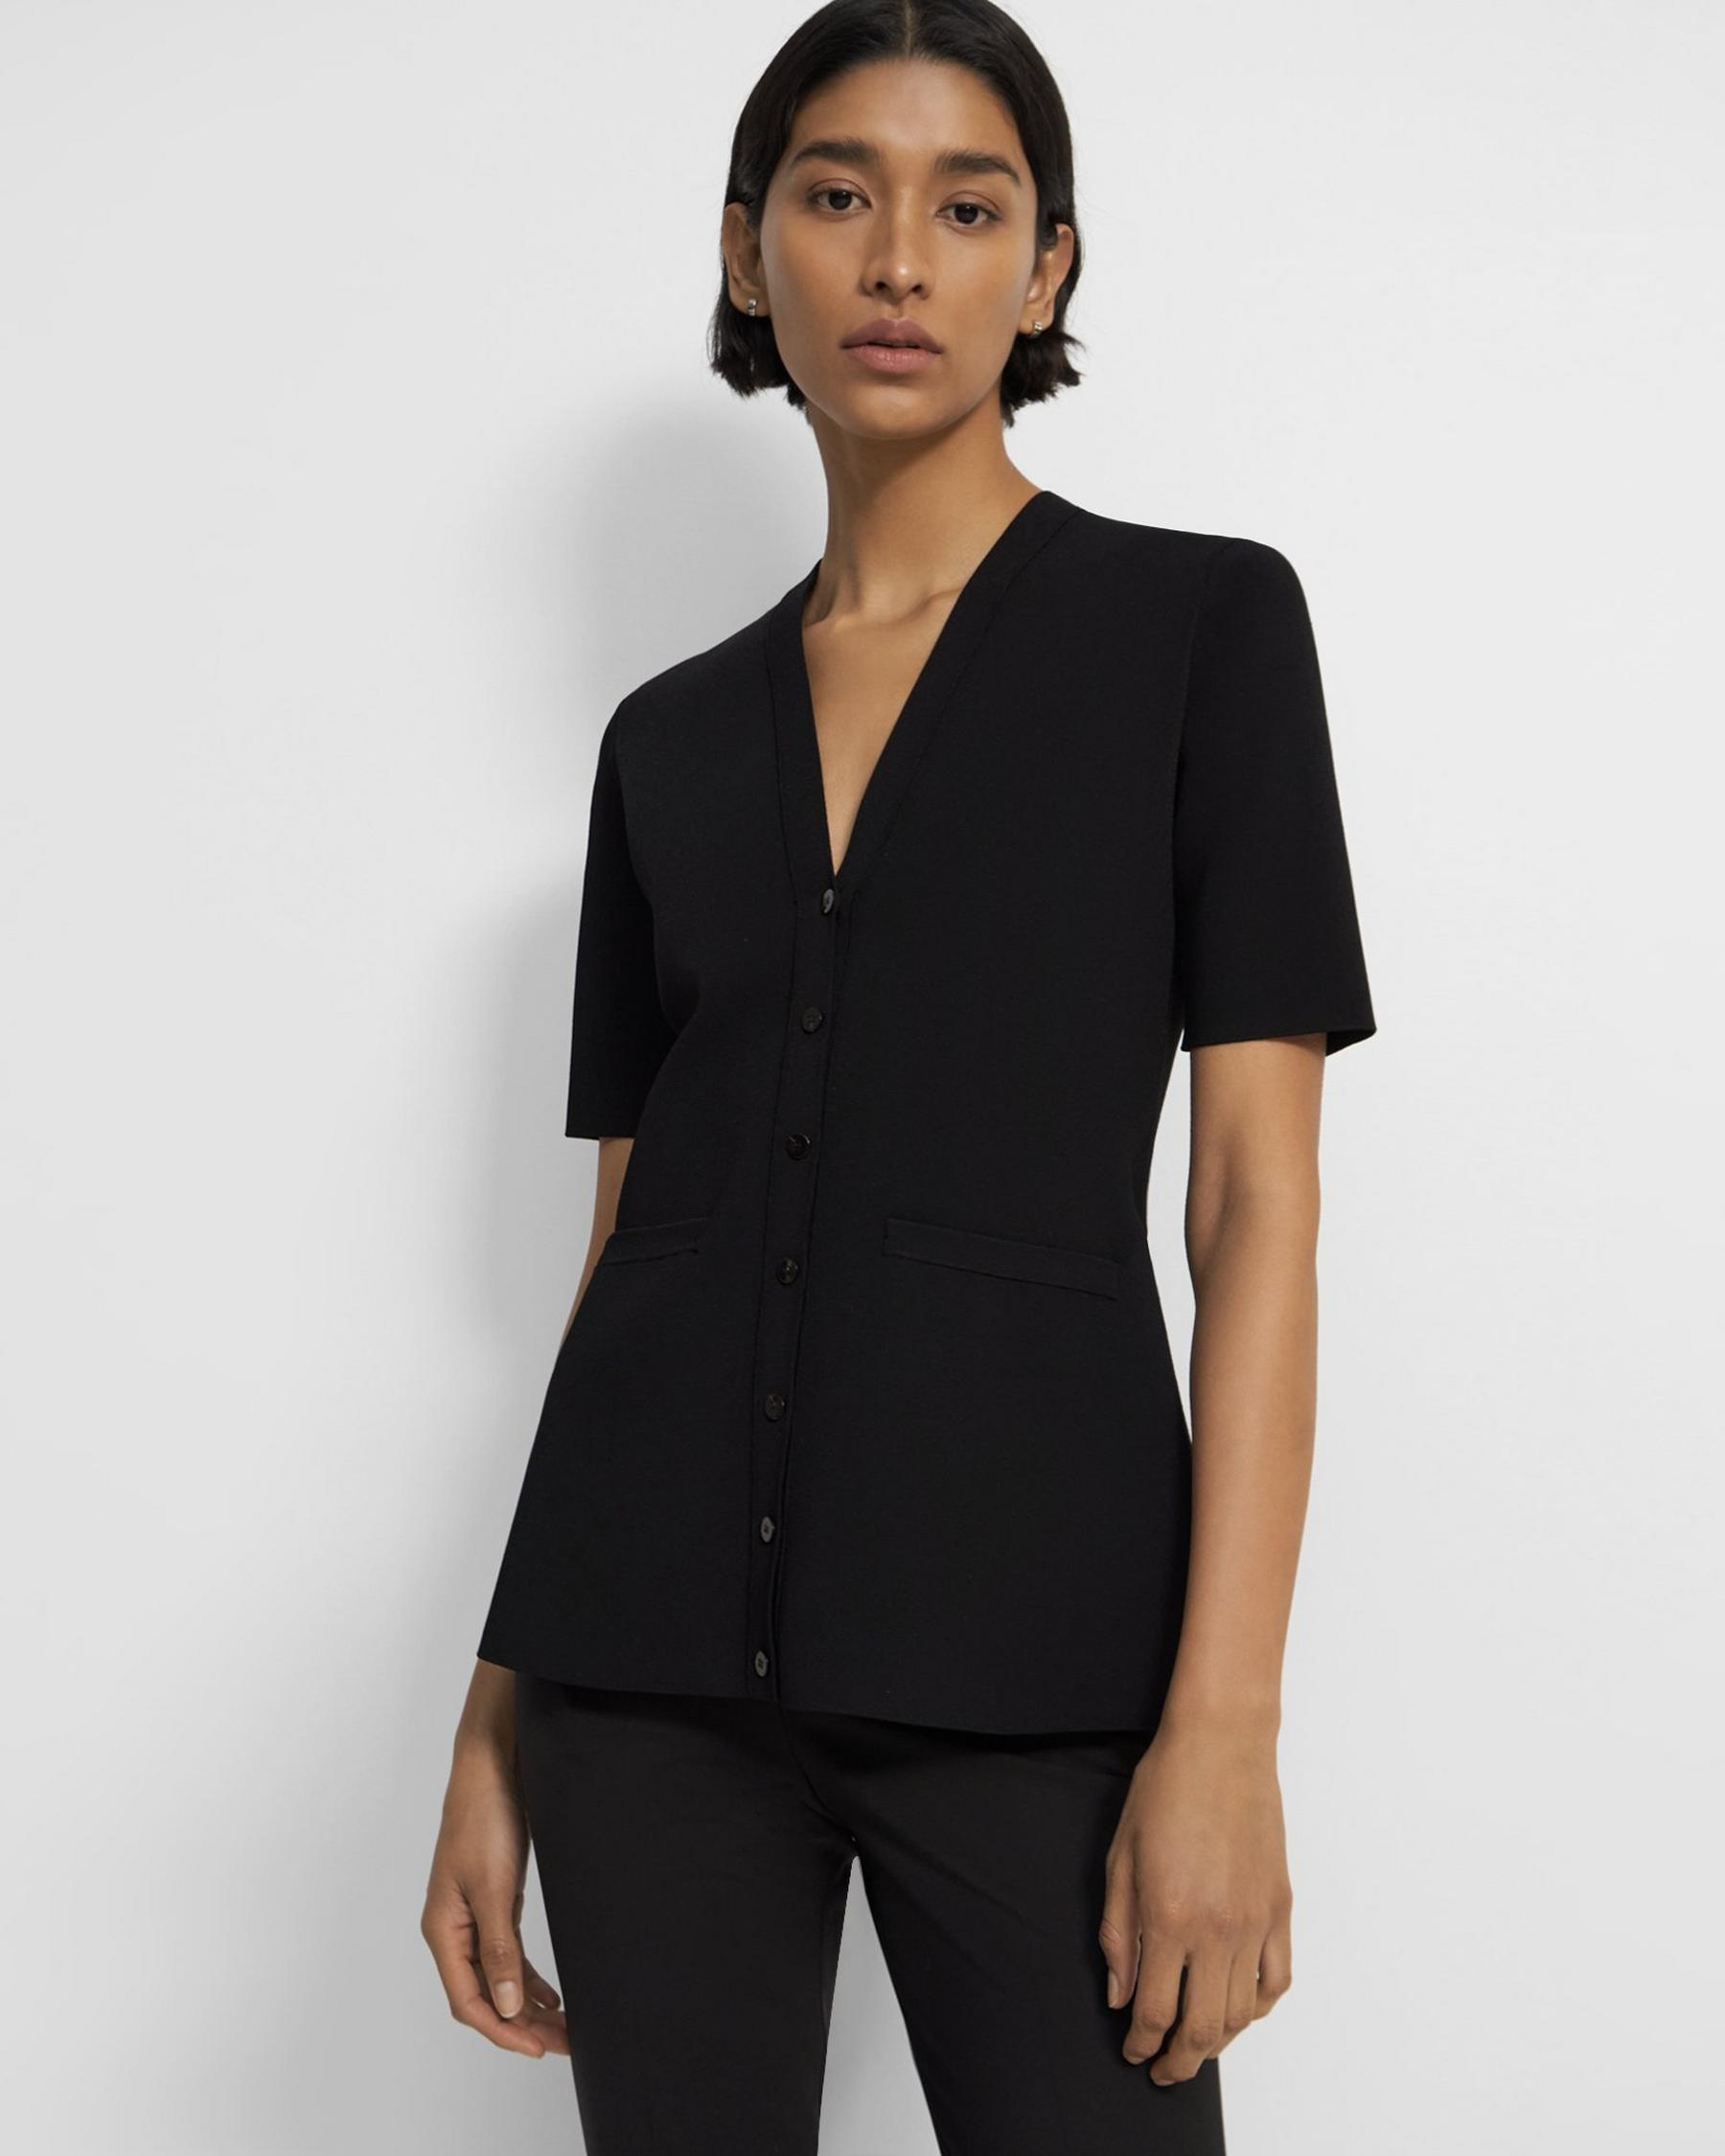 Short-Sleeve Cardigan in Crepe Knit